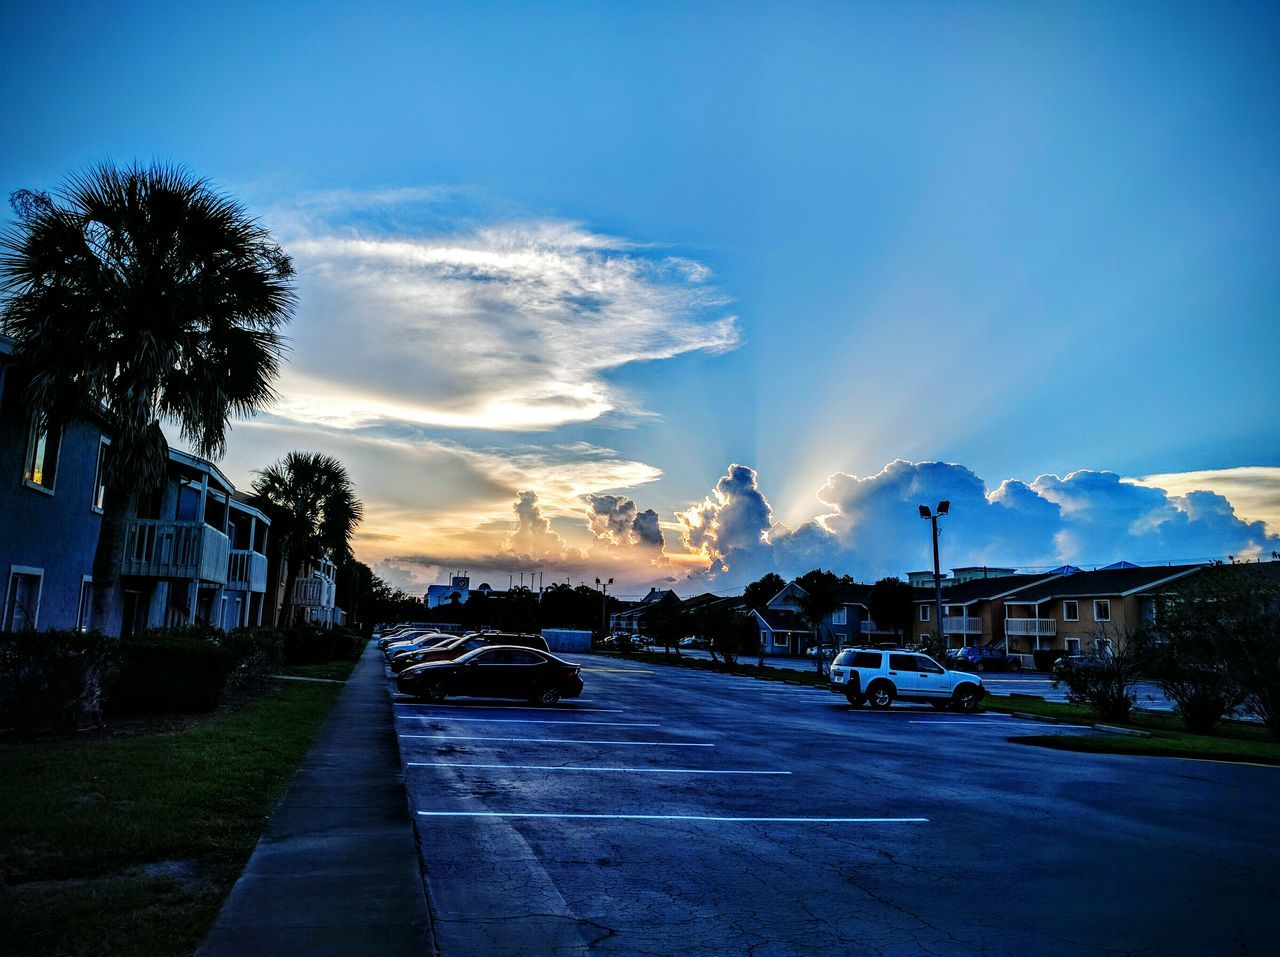 Floridatech Check This Out Hanging Out Florida Sunset Floridatrail Cheese! Hello World Hi! First Eyeem Photo